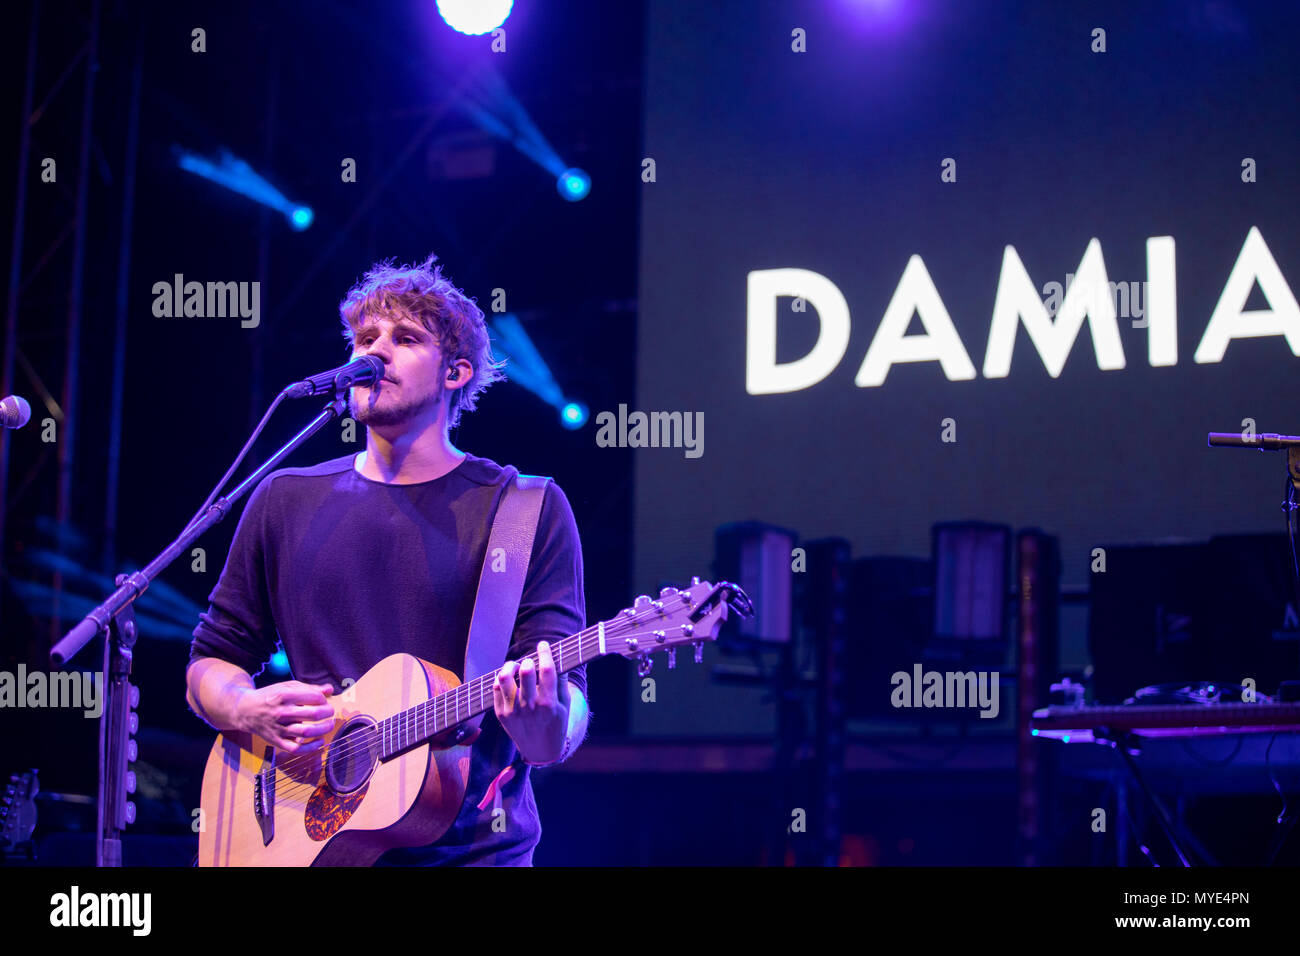 Cannes, France, 6 June 2018, Damian Lynn in concert at Midem 2018, Midem Beach, Cannes © ifnm / Alamy Live News - Stock Image